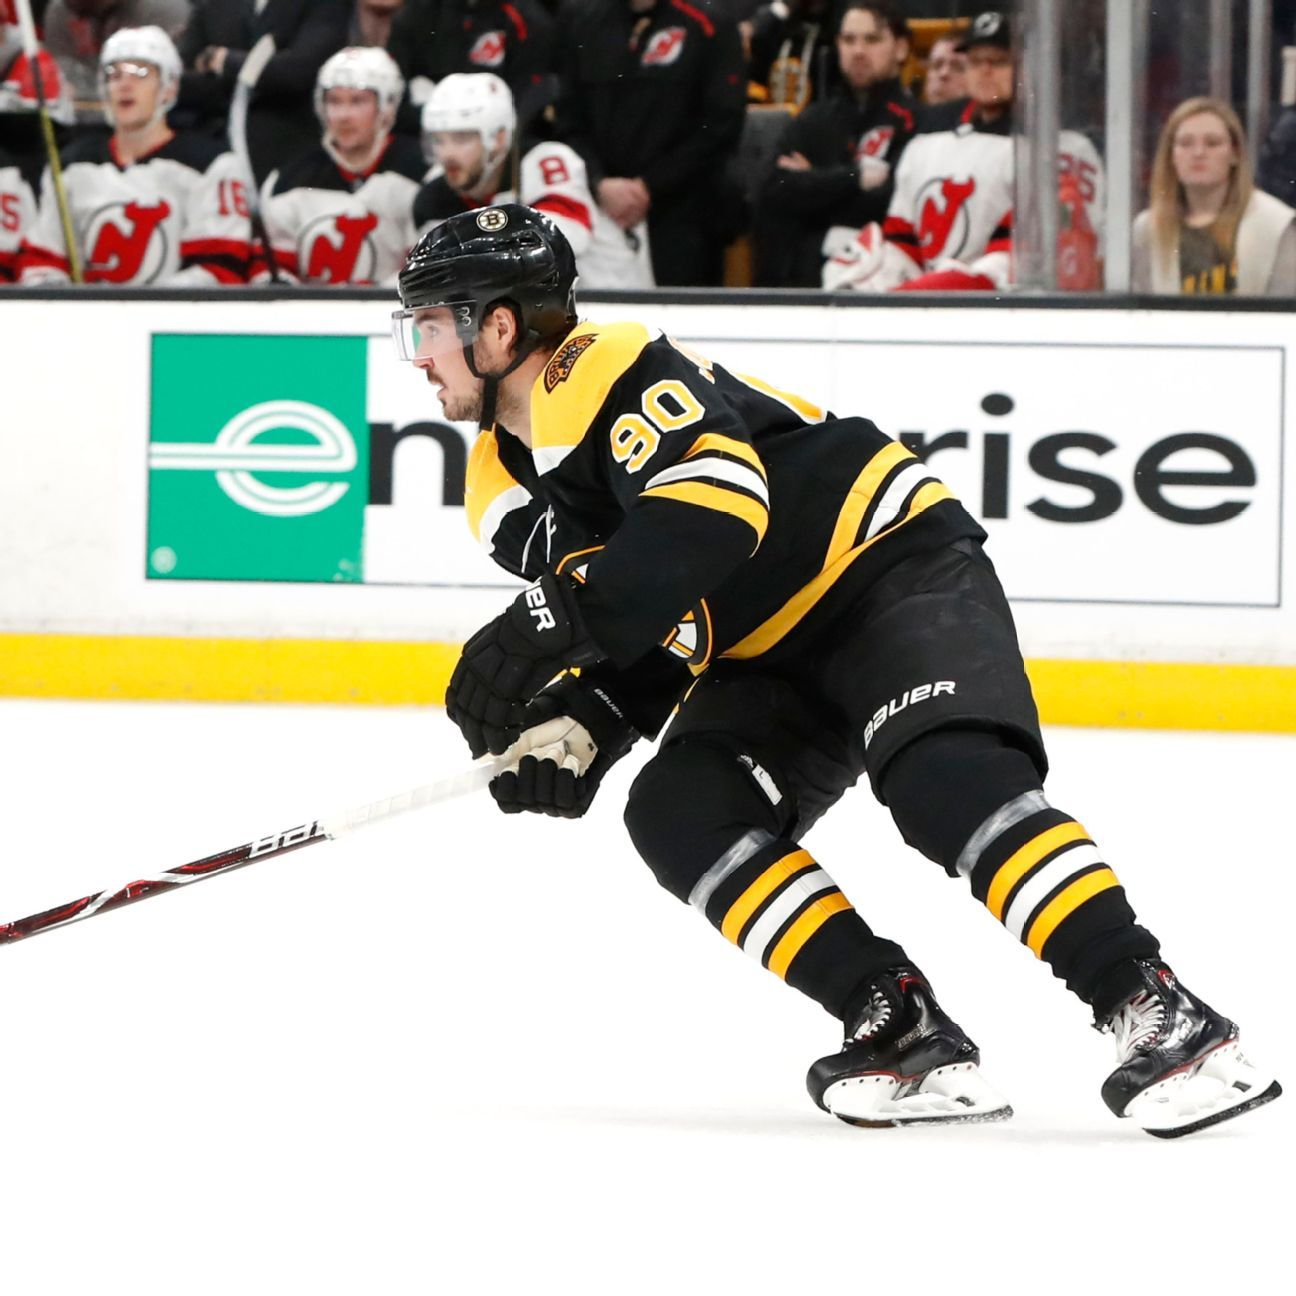 Bruins' Johansson Sidelined With Lung Contusion